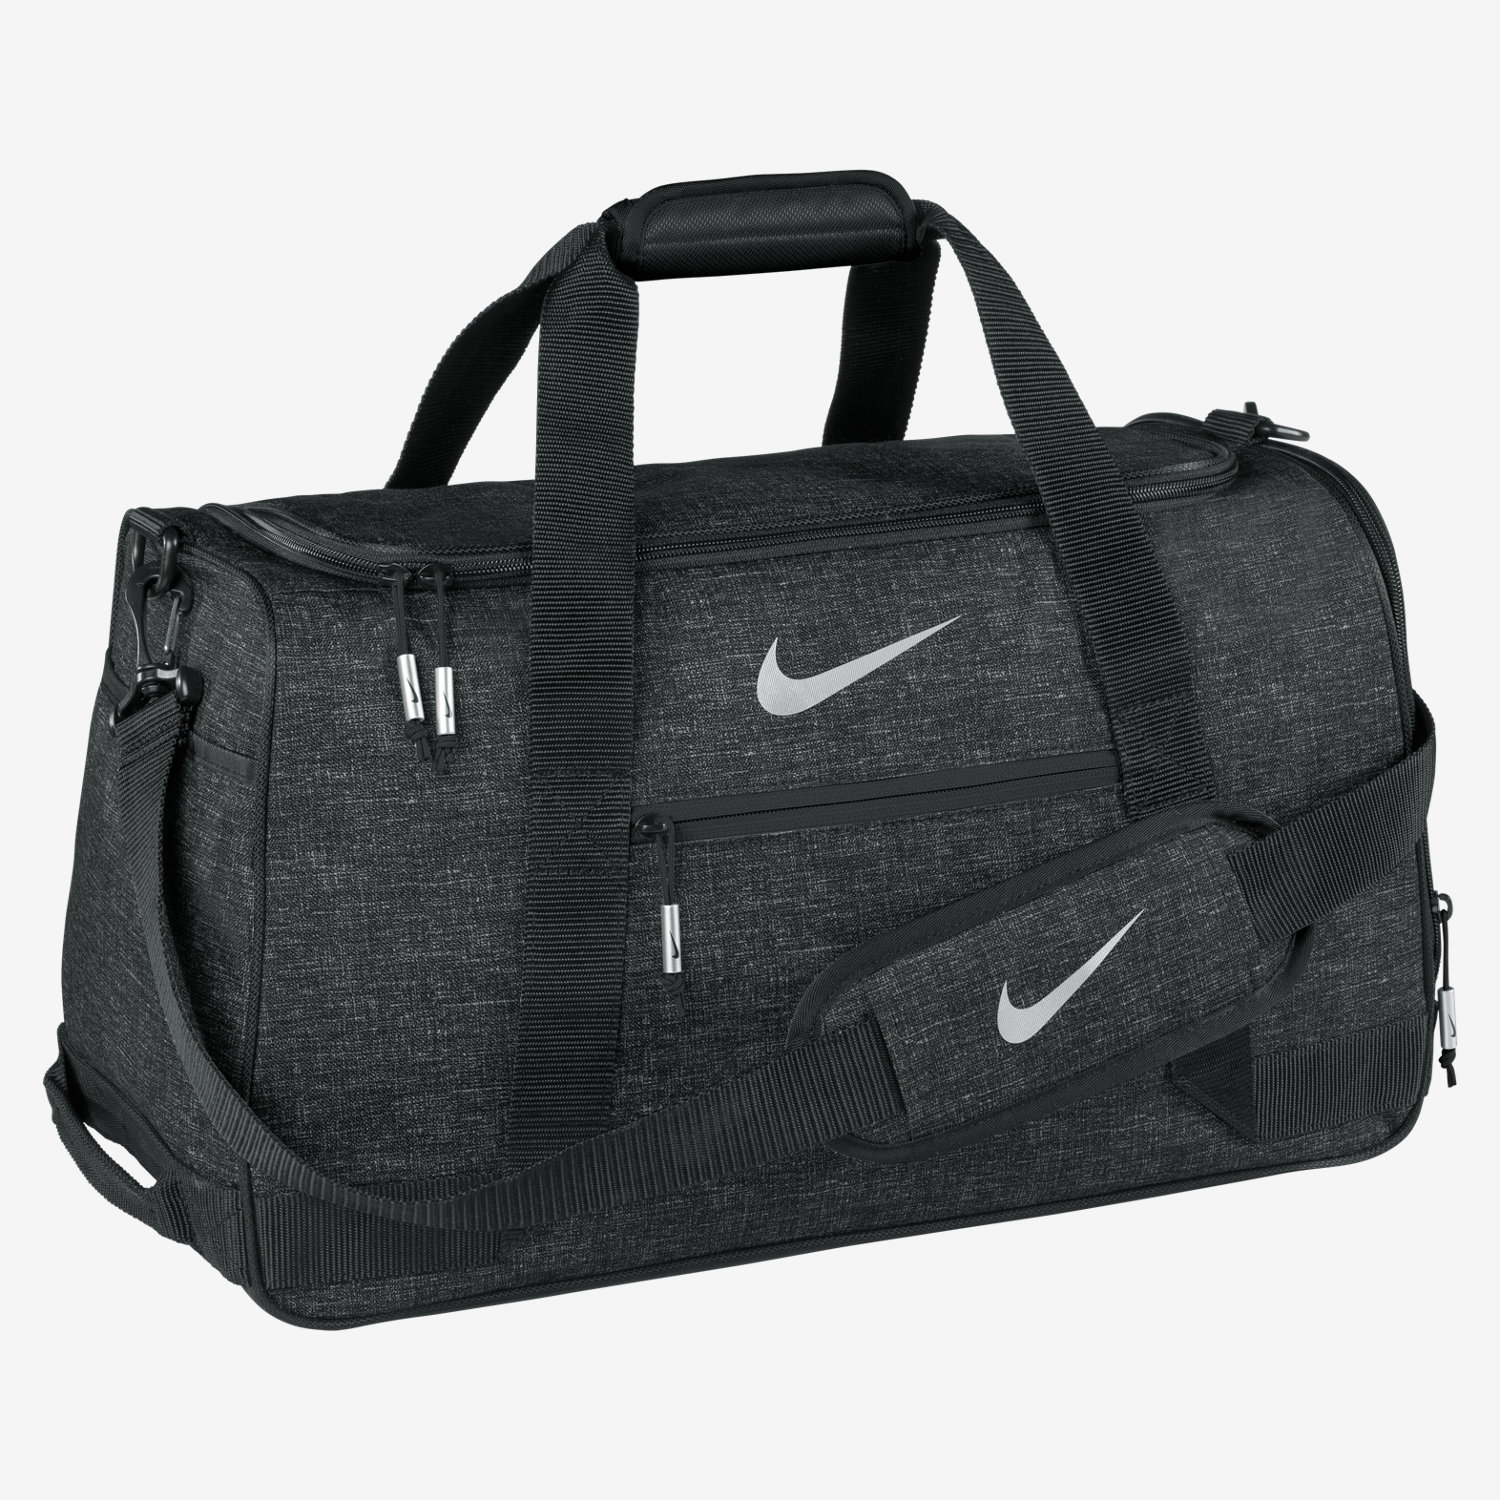 nike holdall bag